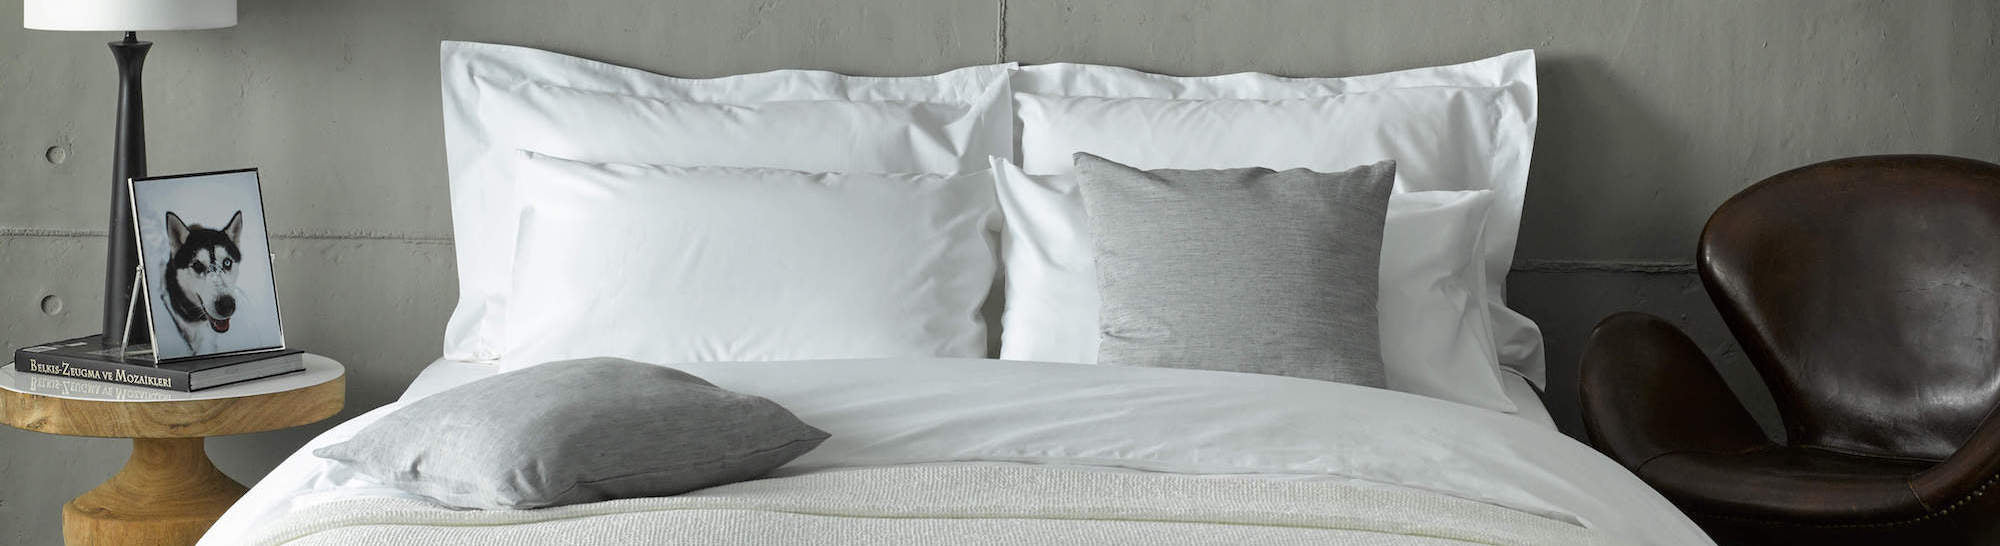 bed made with cotton white bedding